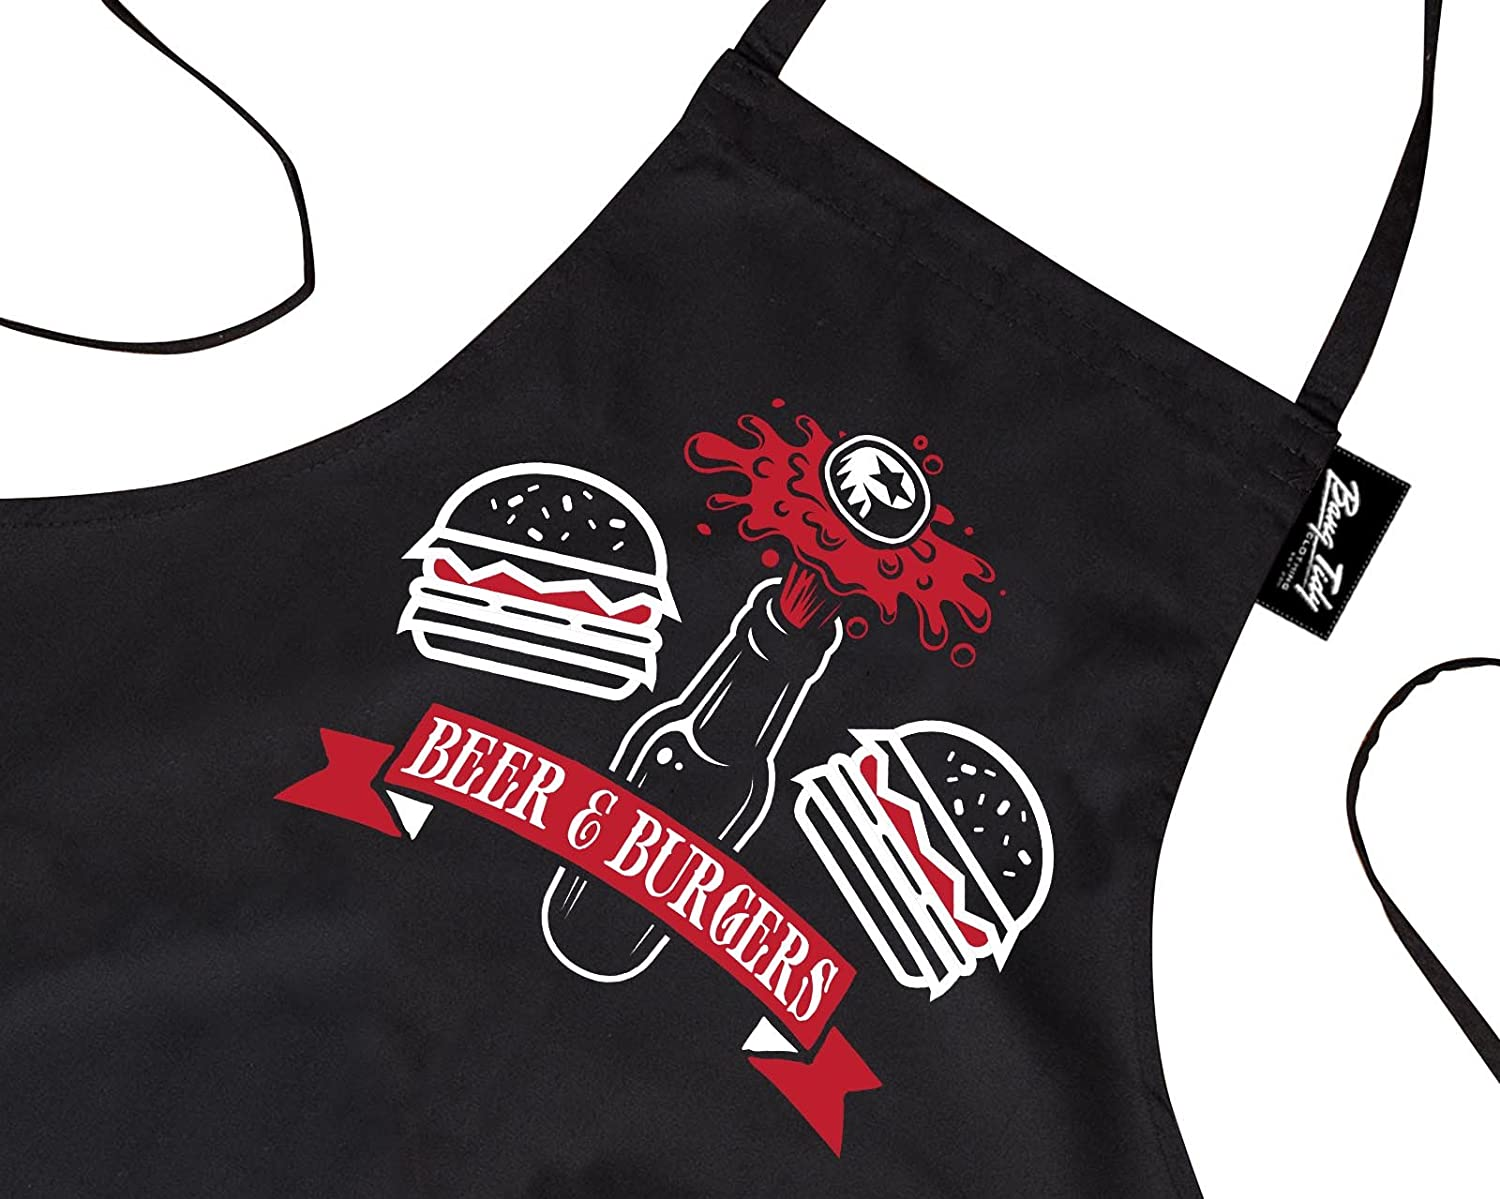 Funny BBQ Apron Novelty Aprons Cooking Gifts for Men Beer & Burgers Black One Size FD4057P1